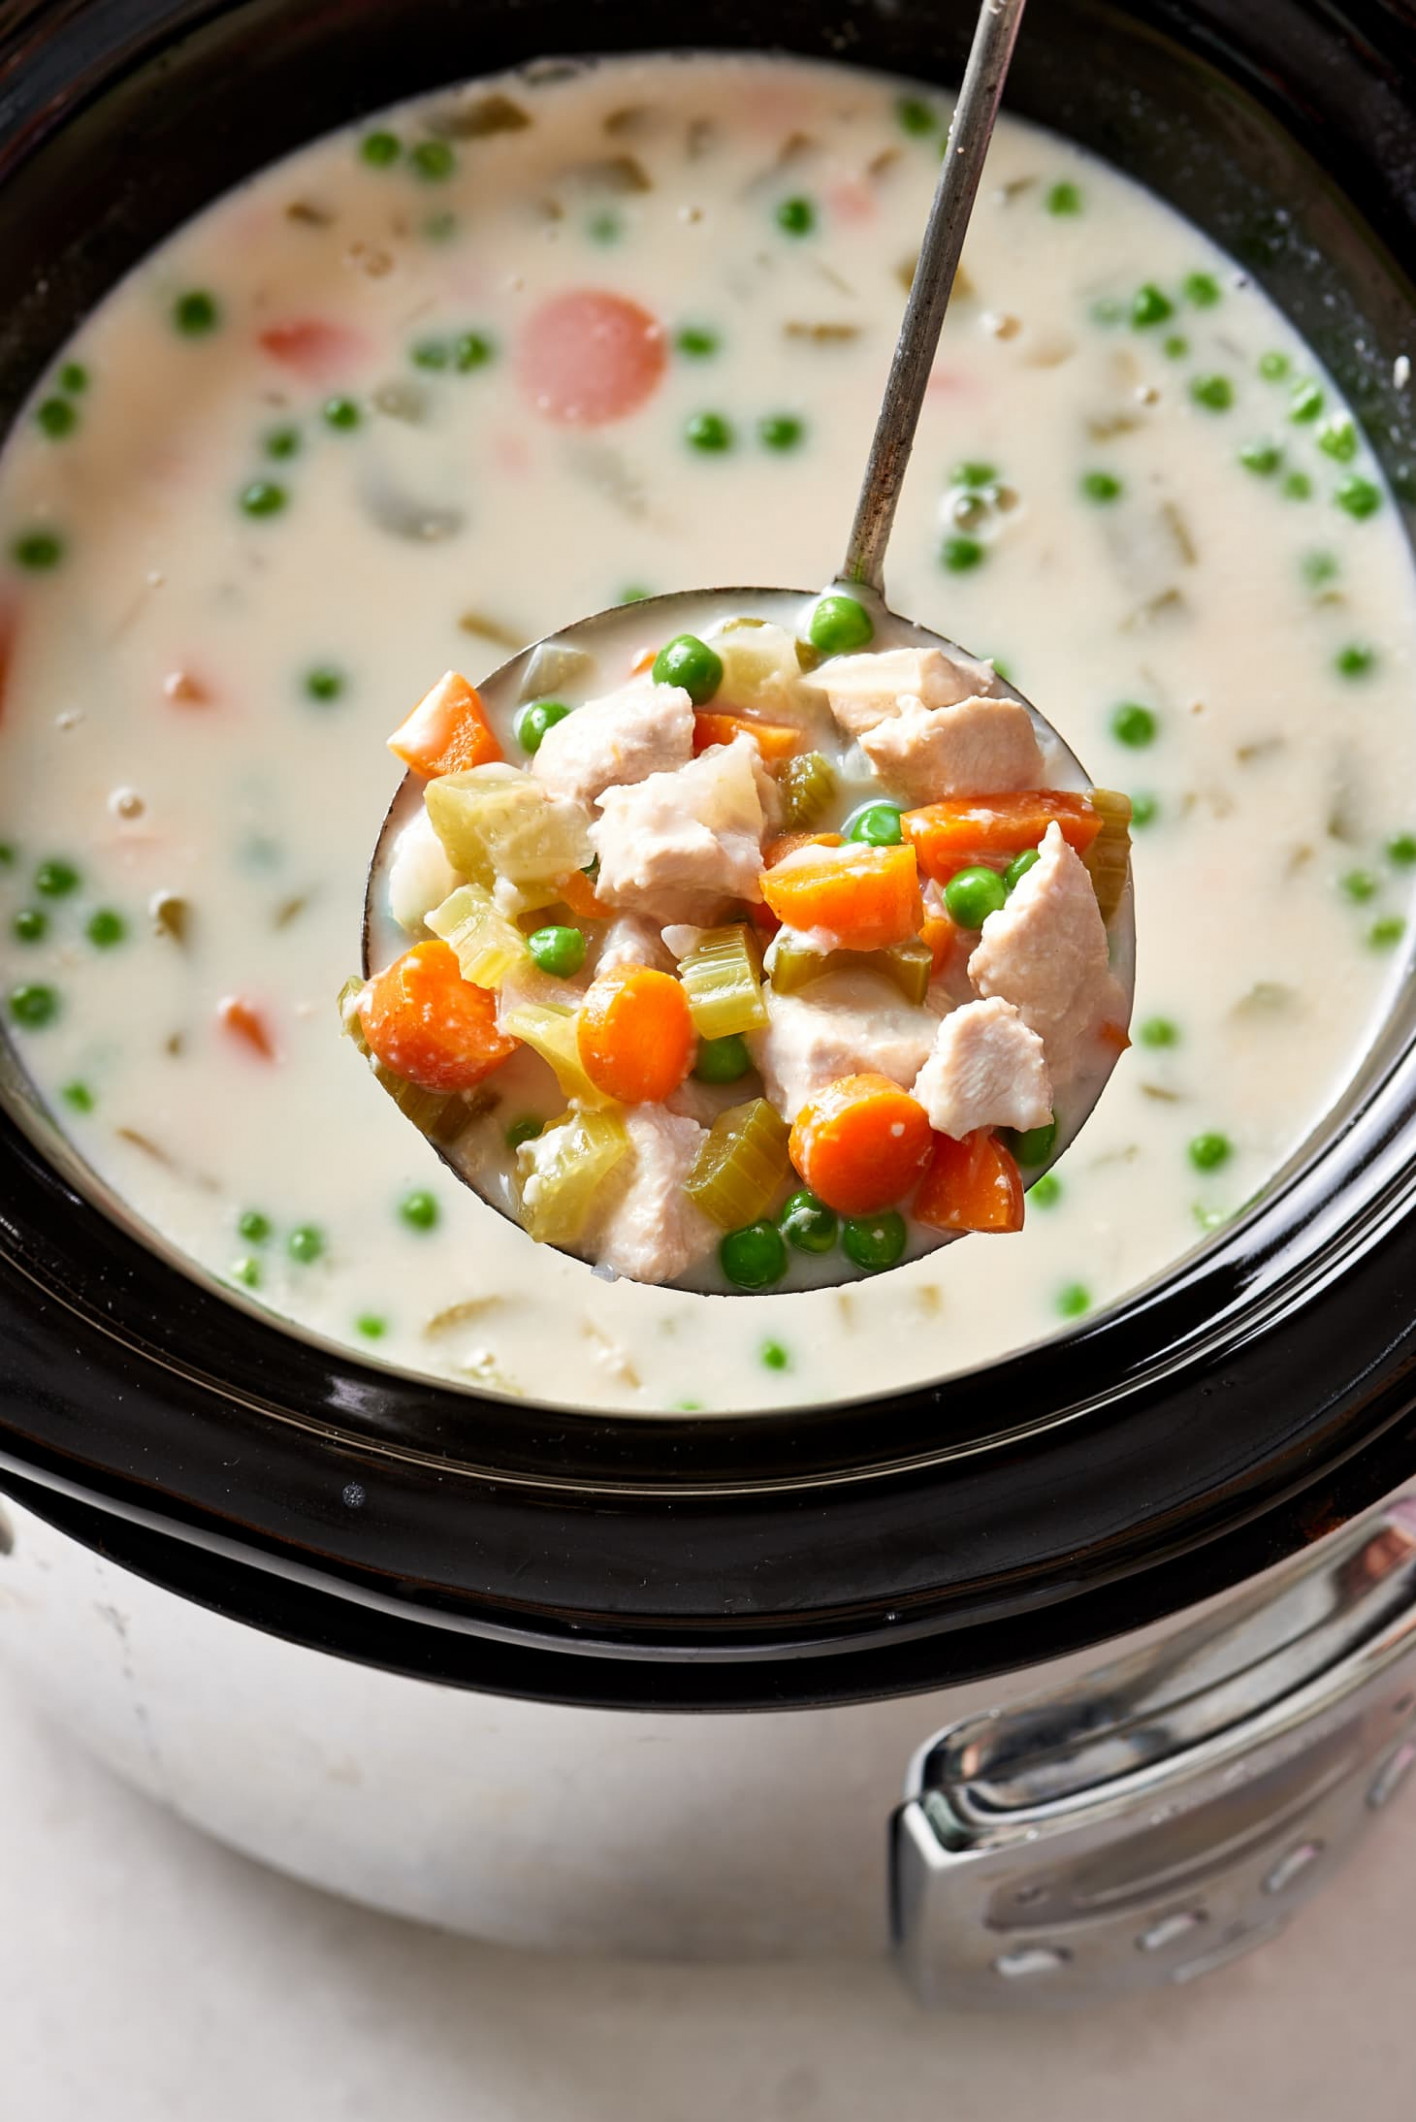 How To Make Slow Cooker Cream of Chicken Soup - recipes that use cream of chicken soup